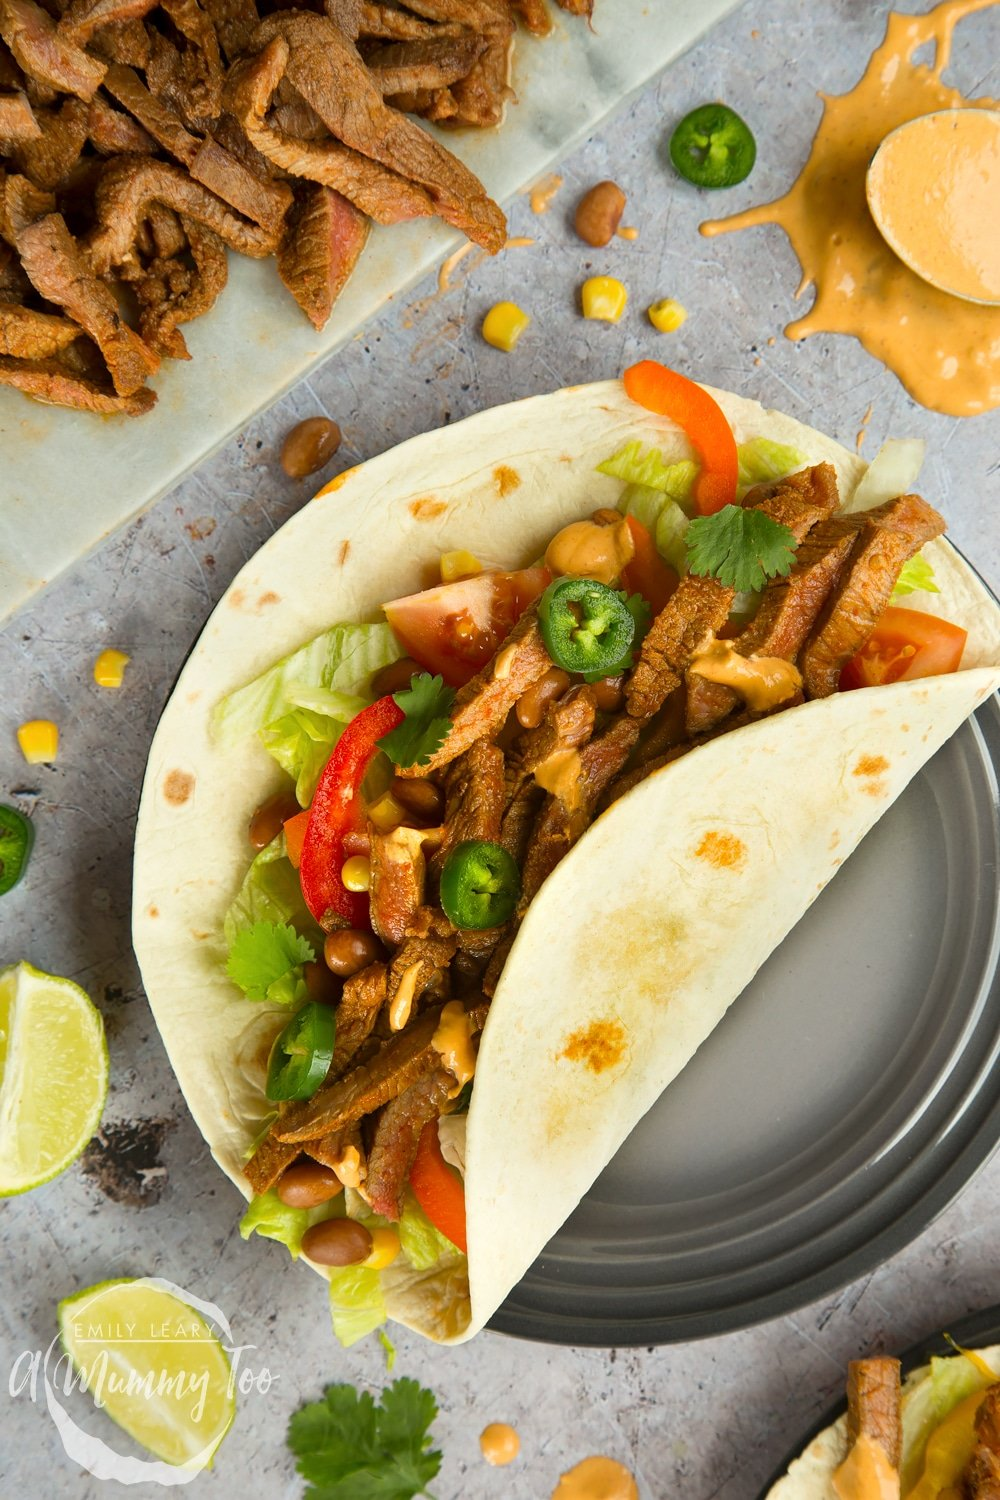 Serve everything to the table, with added accompaniments, for everyone to assemble their own spicy chipotle beef carne asada fajitas!